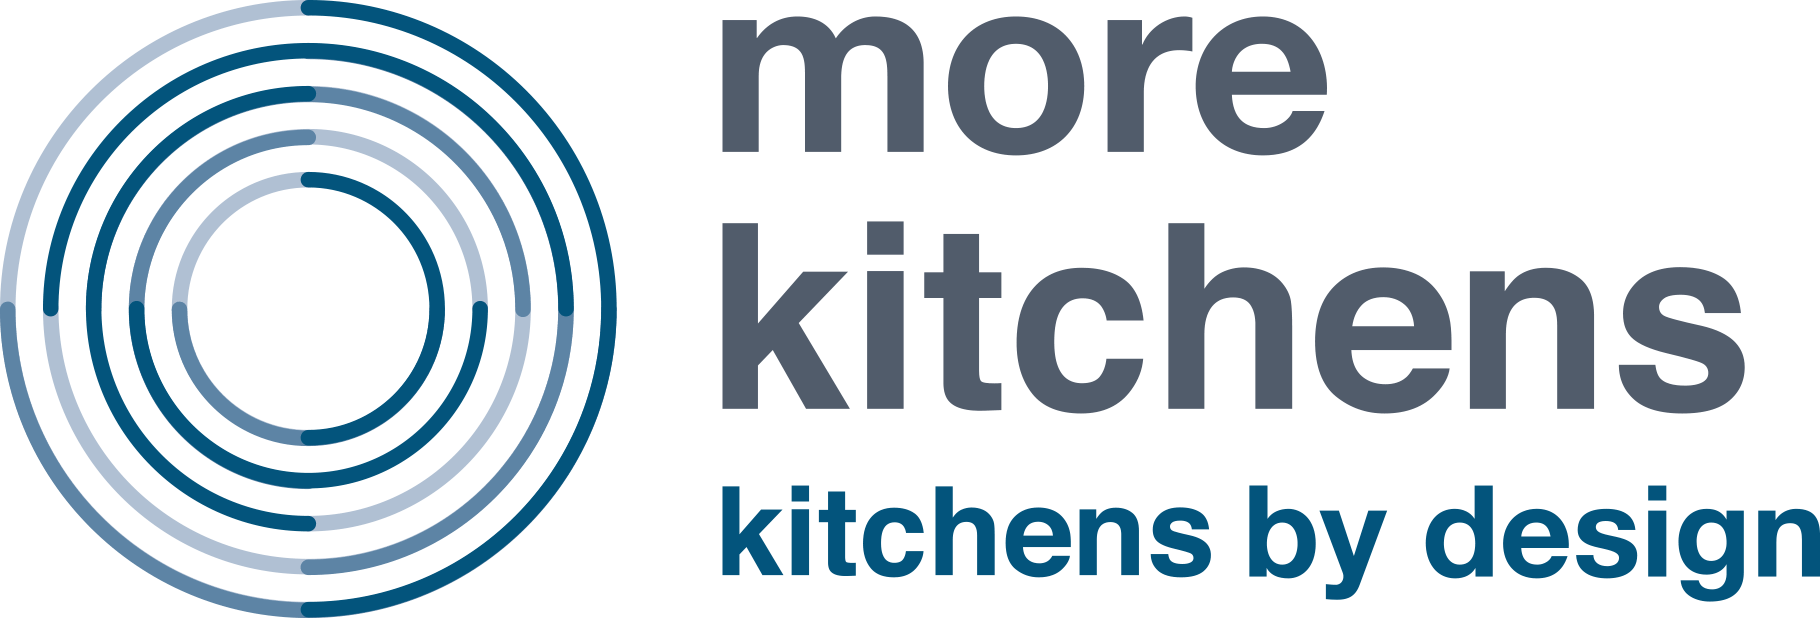 More Kitchens Logo